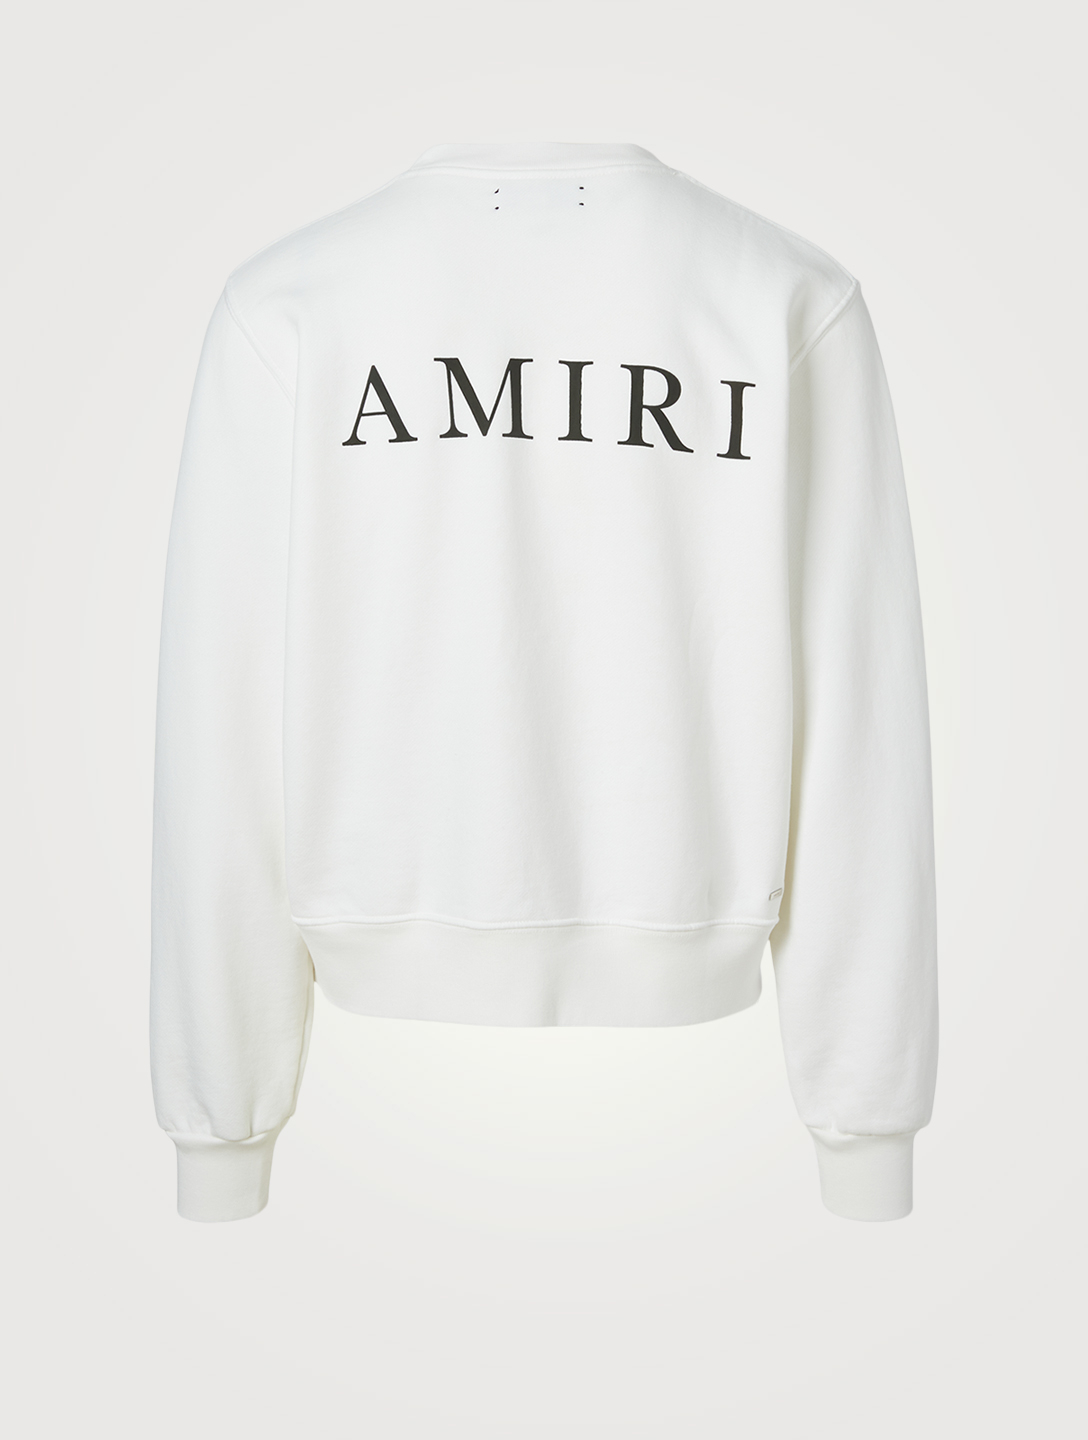 AMIRI Cotton Sweatshirt With Logo Men's White